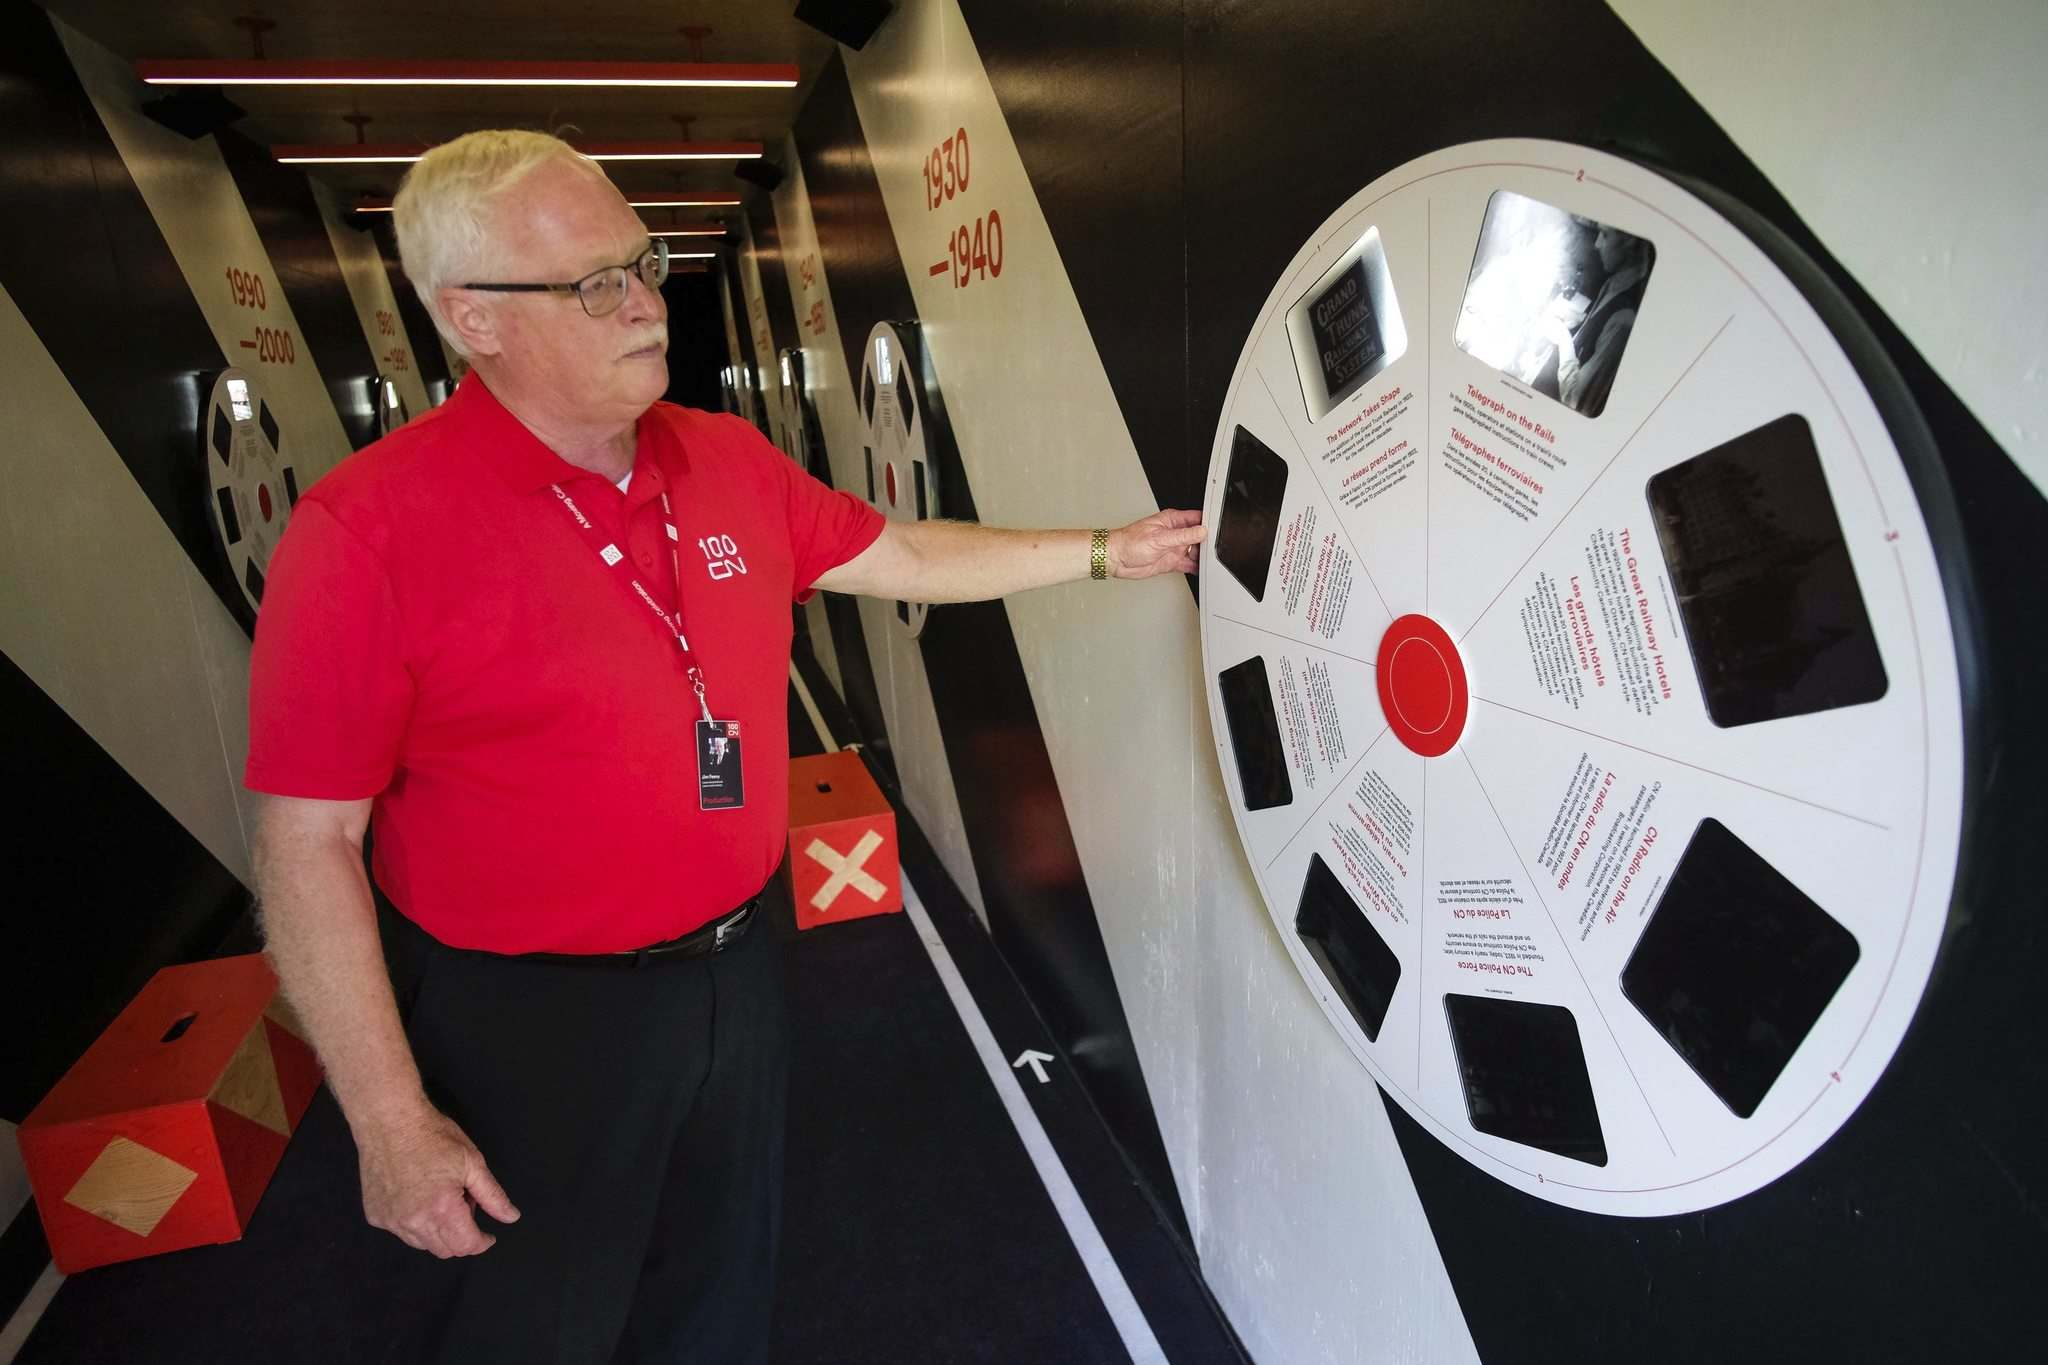 Jim Feeny demonstrates an exhibit based on an old the View-Master toy that allows visitors to see photos from some of CN's 100 year history. (Daniel Crump / Winnipeg Free Press)</p>